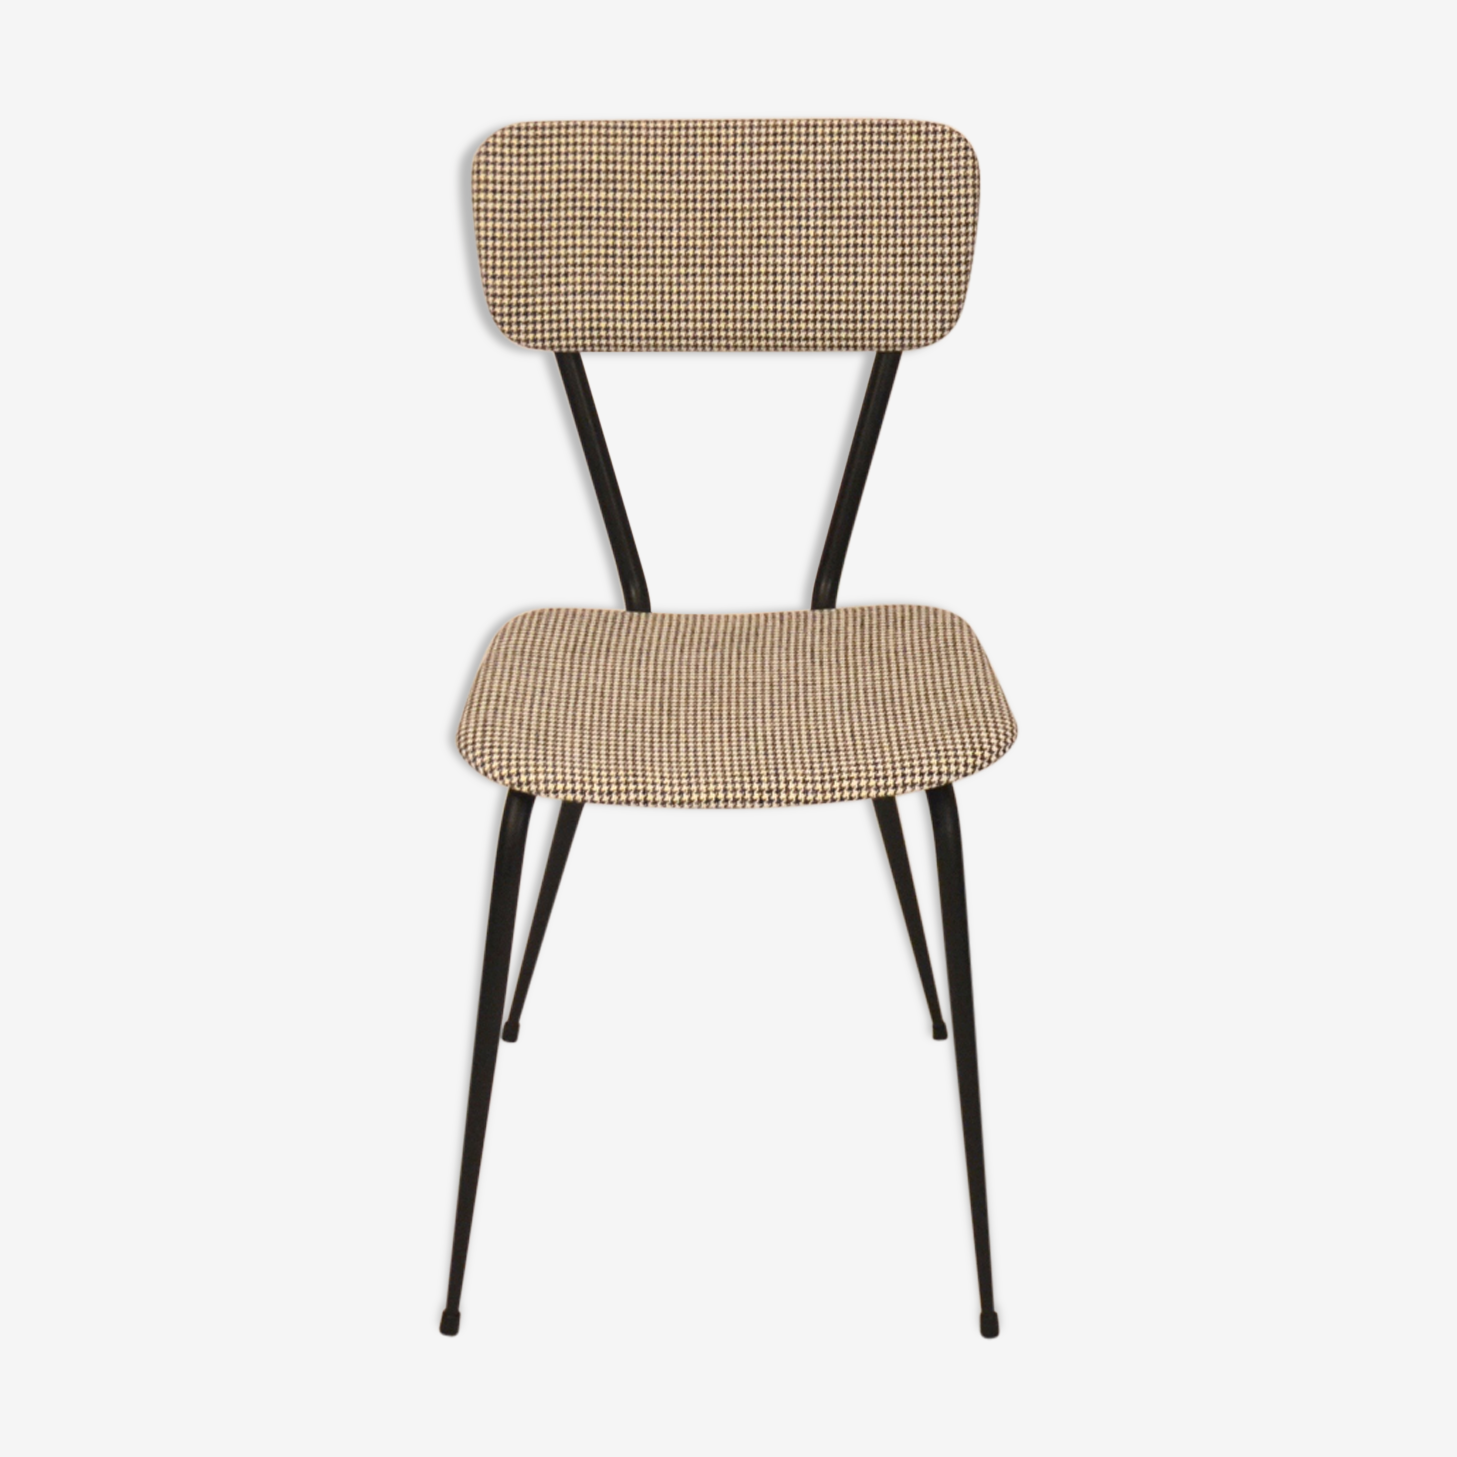 Chair 50 retapissee houndstooth years